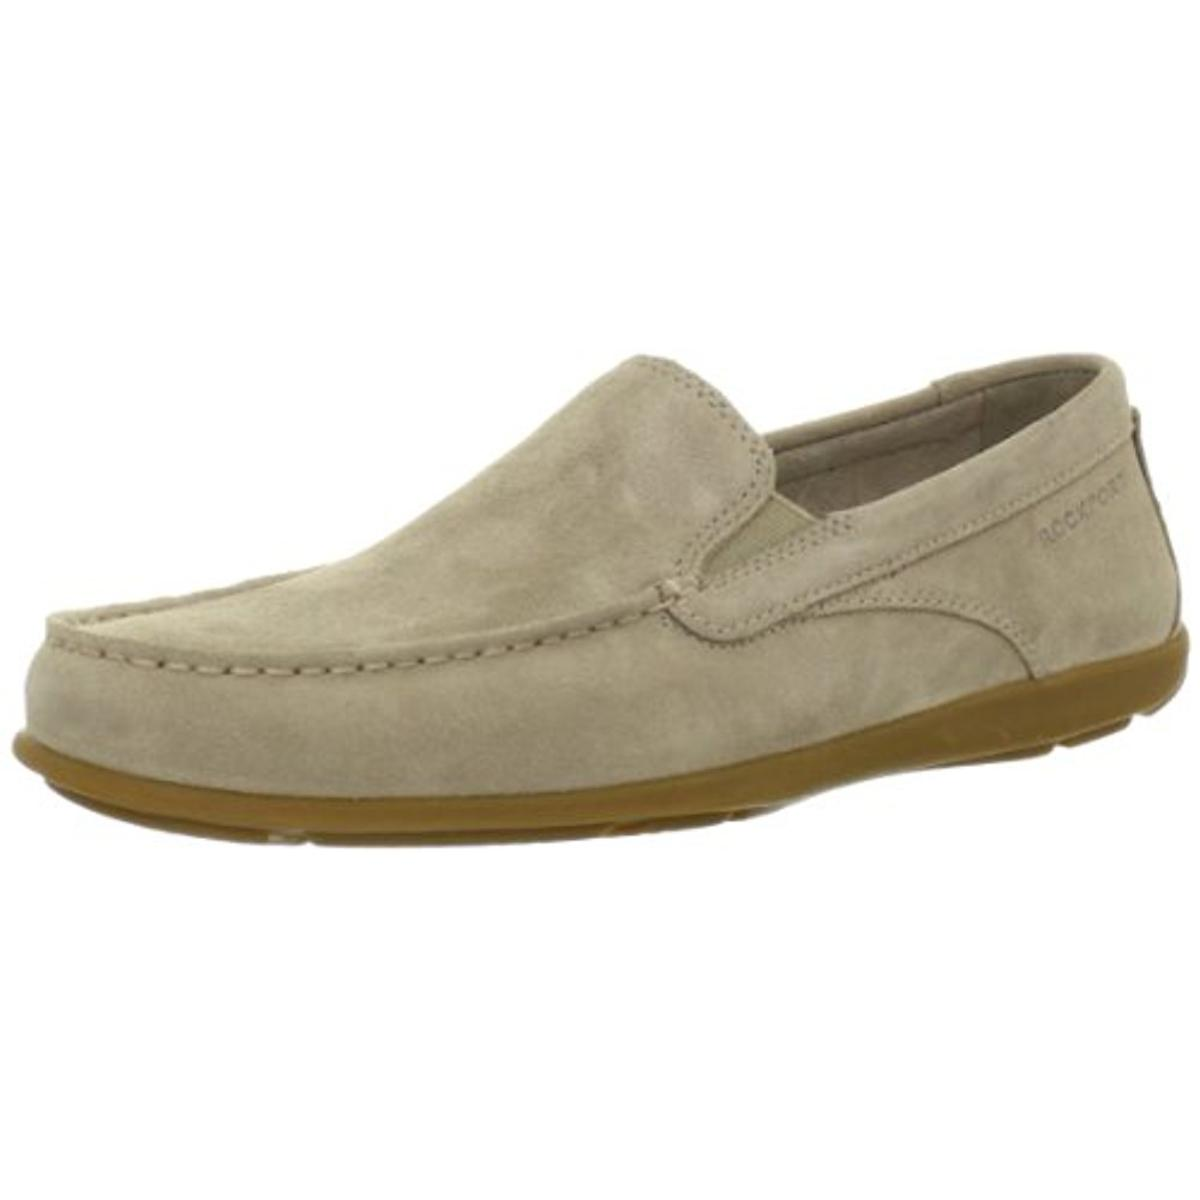 rockport mens leather slip on casual shoes walmart